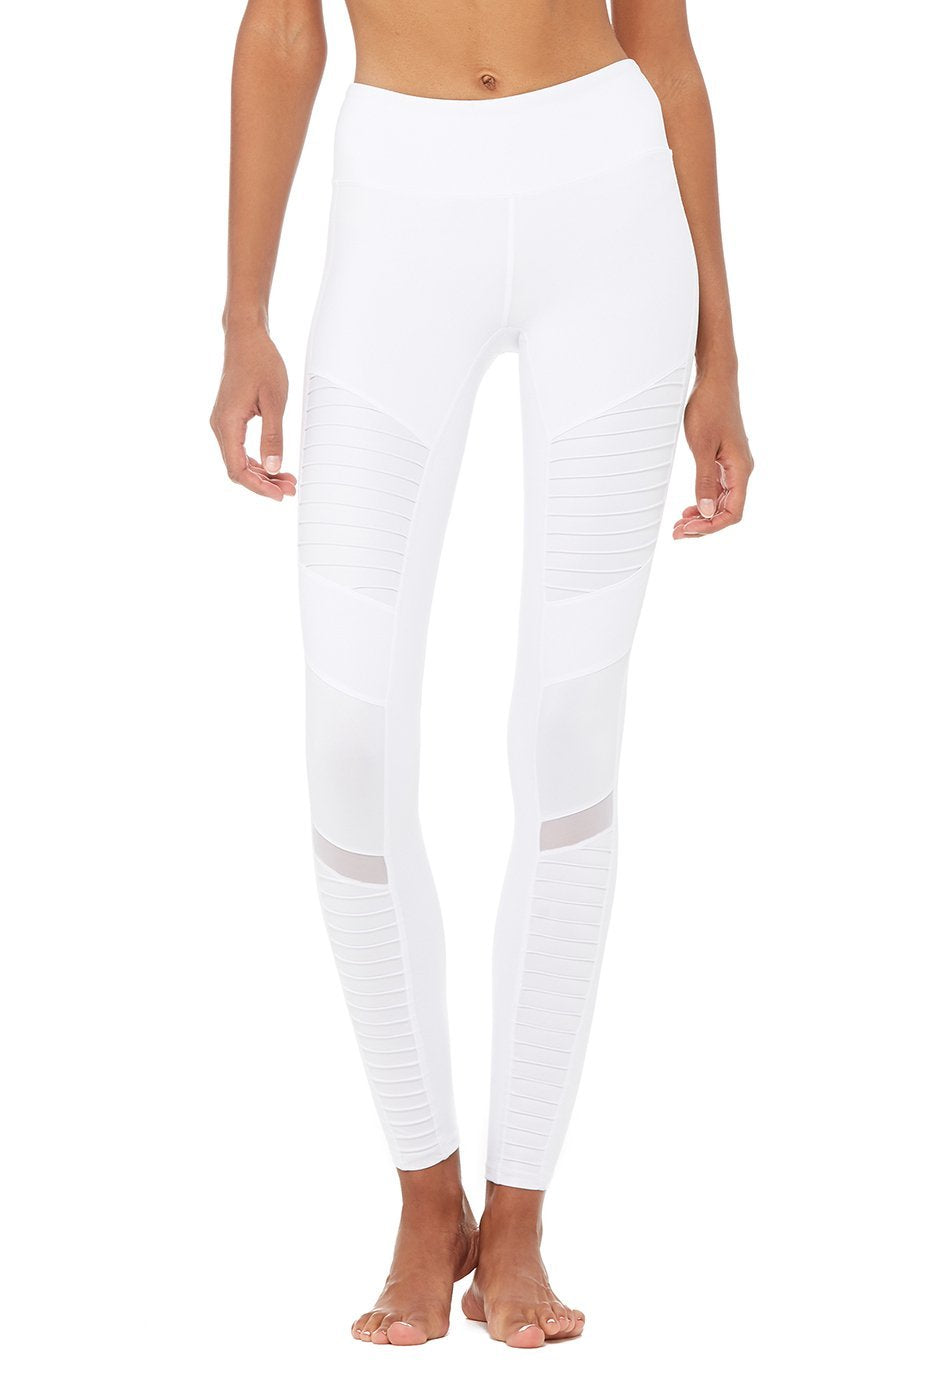 Alo Yoga XXS High-Waist Moto Legging - White Glossy